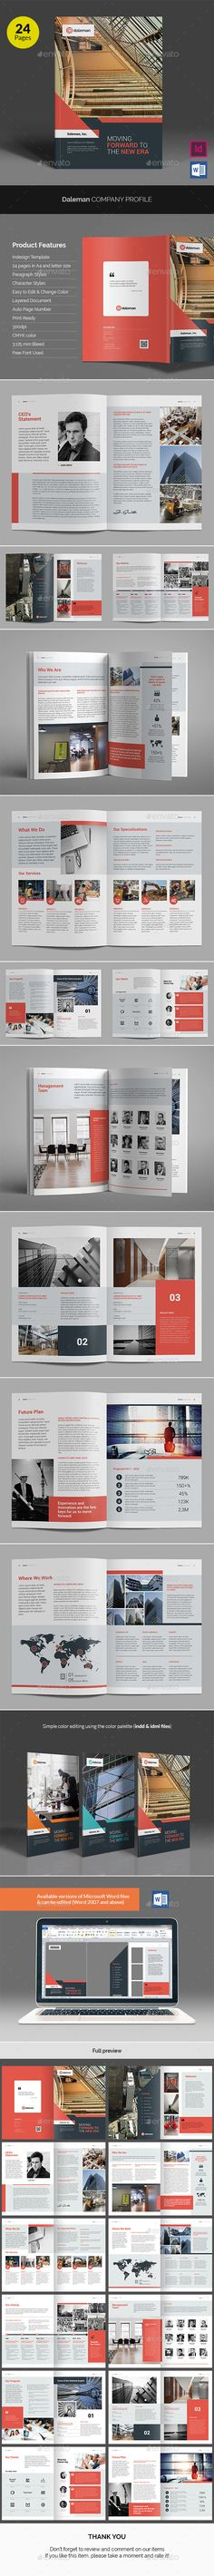 Daleman Company Profile Brochure Template InDesign INDD